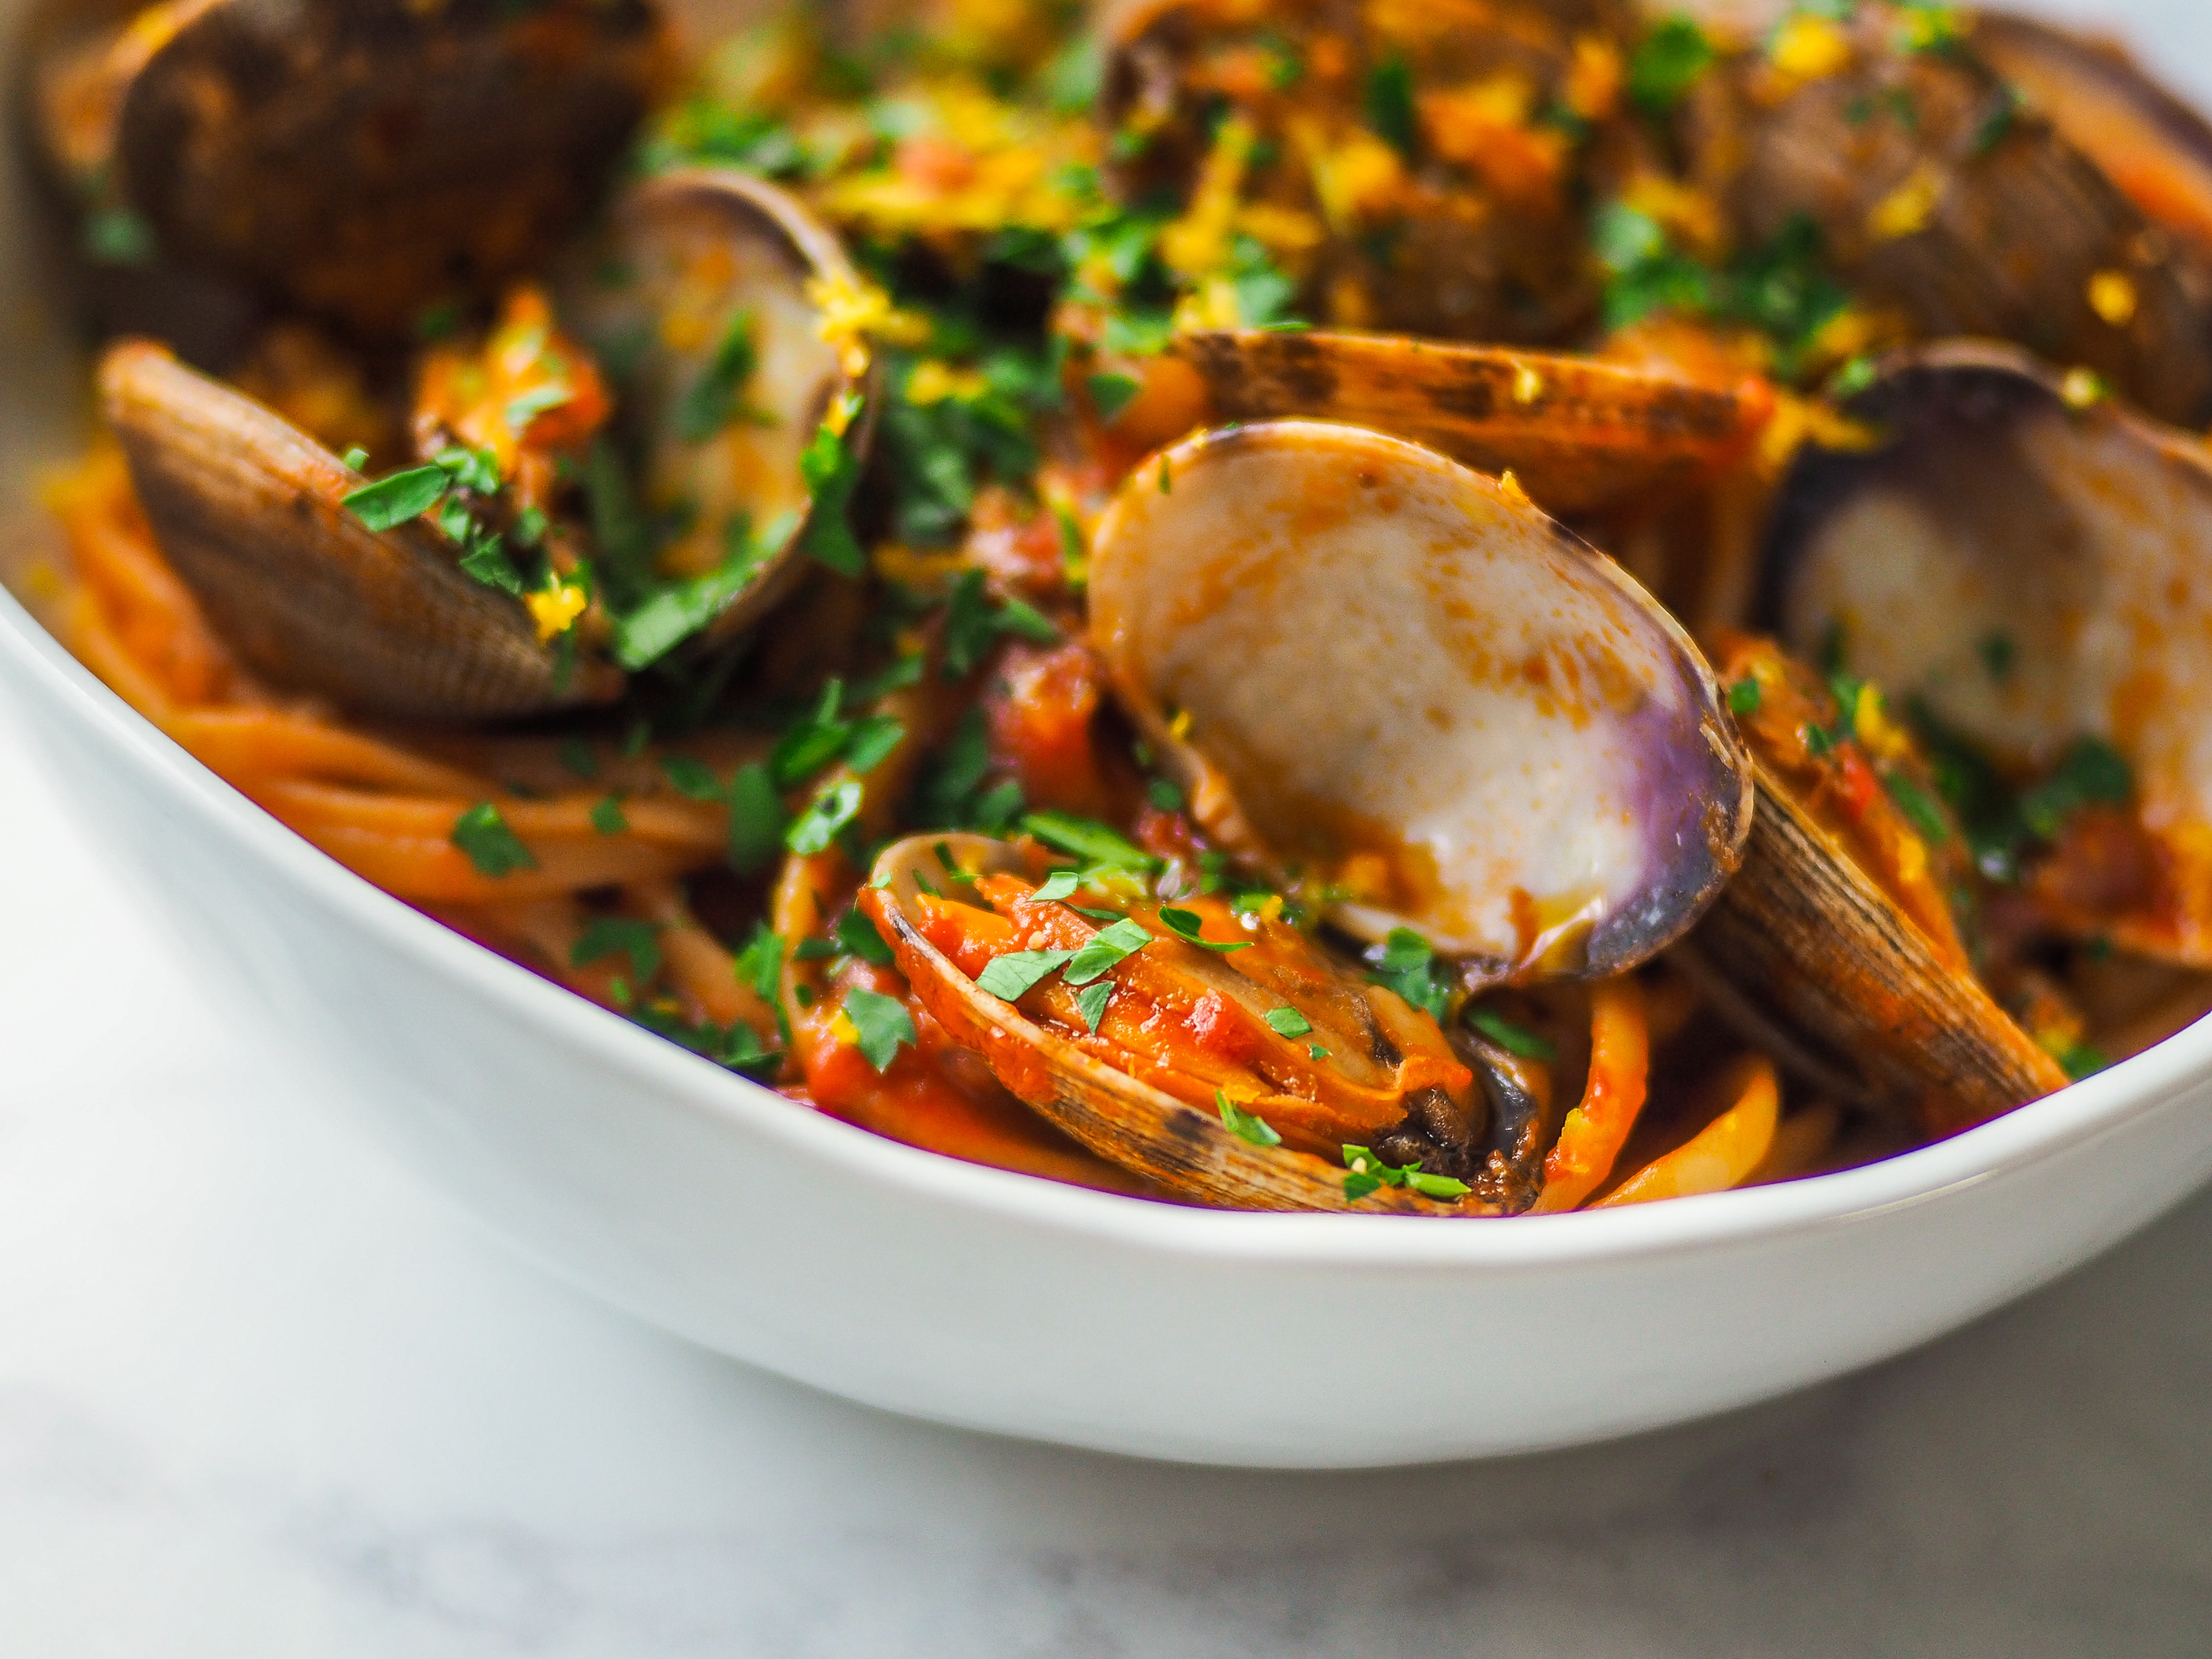 Linguine w/ Red Clam Sauce